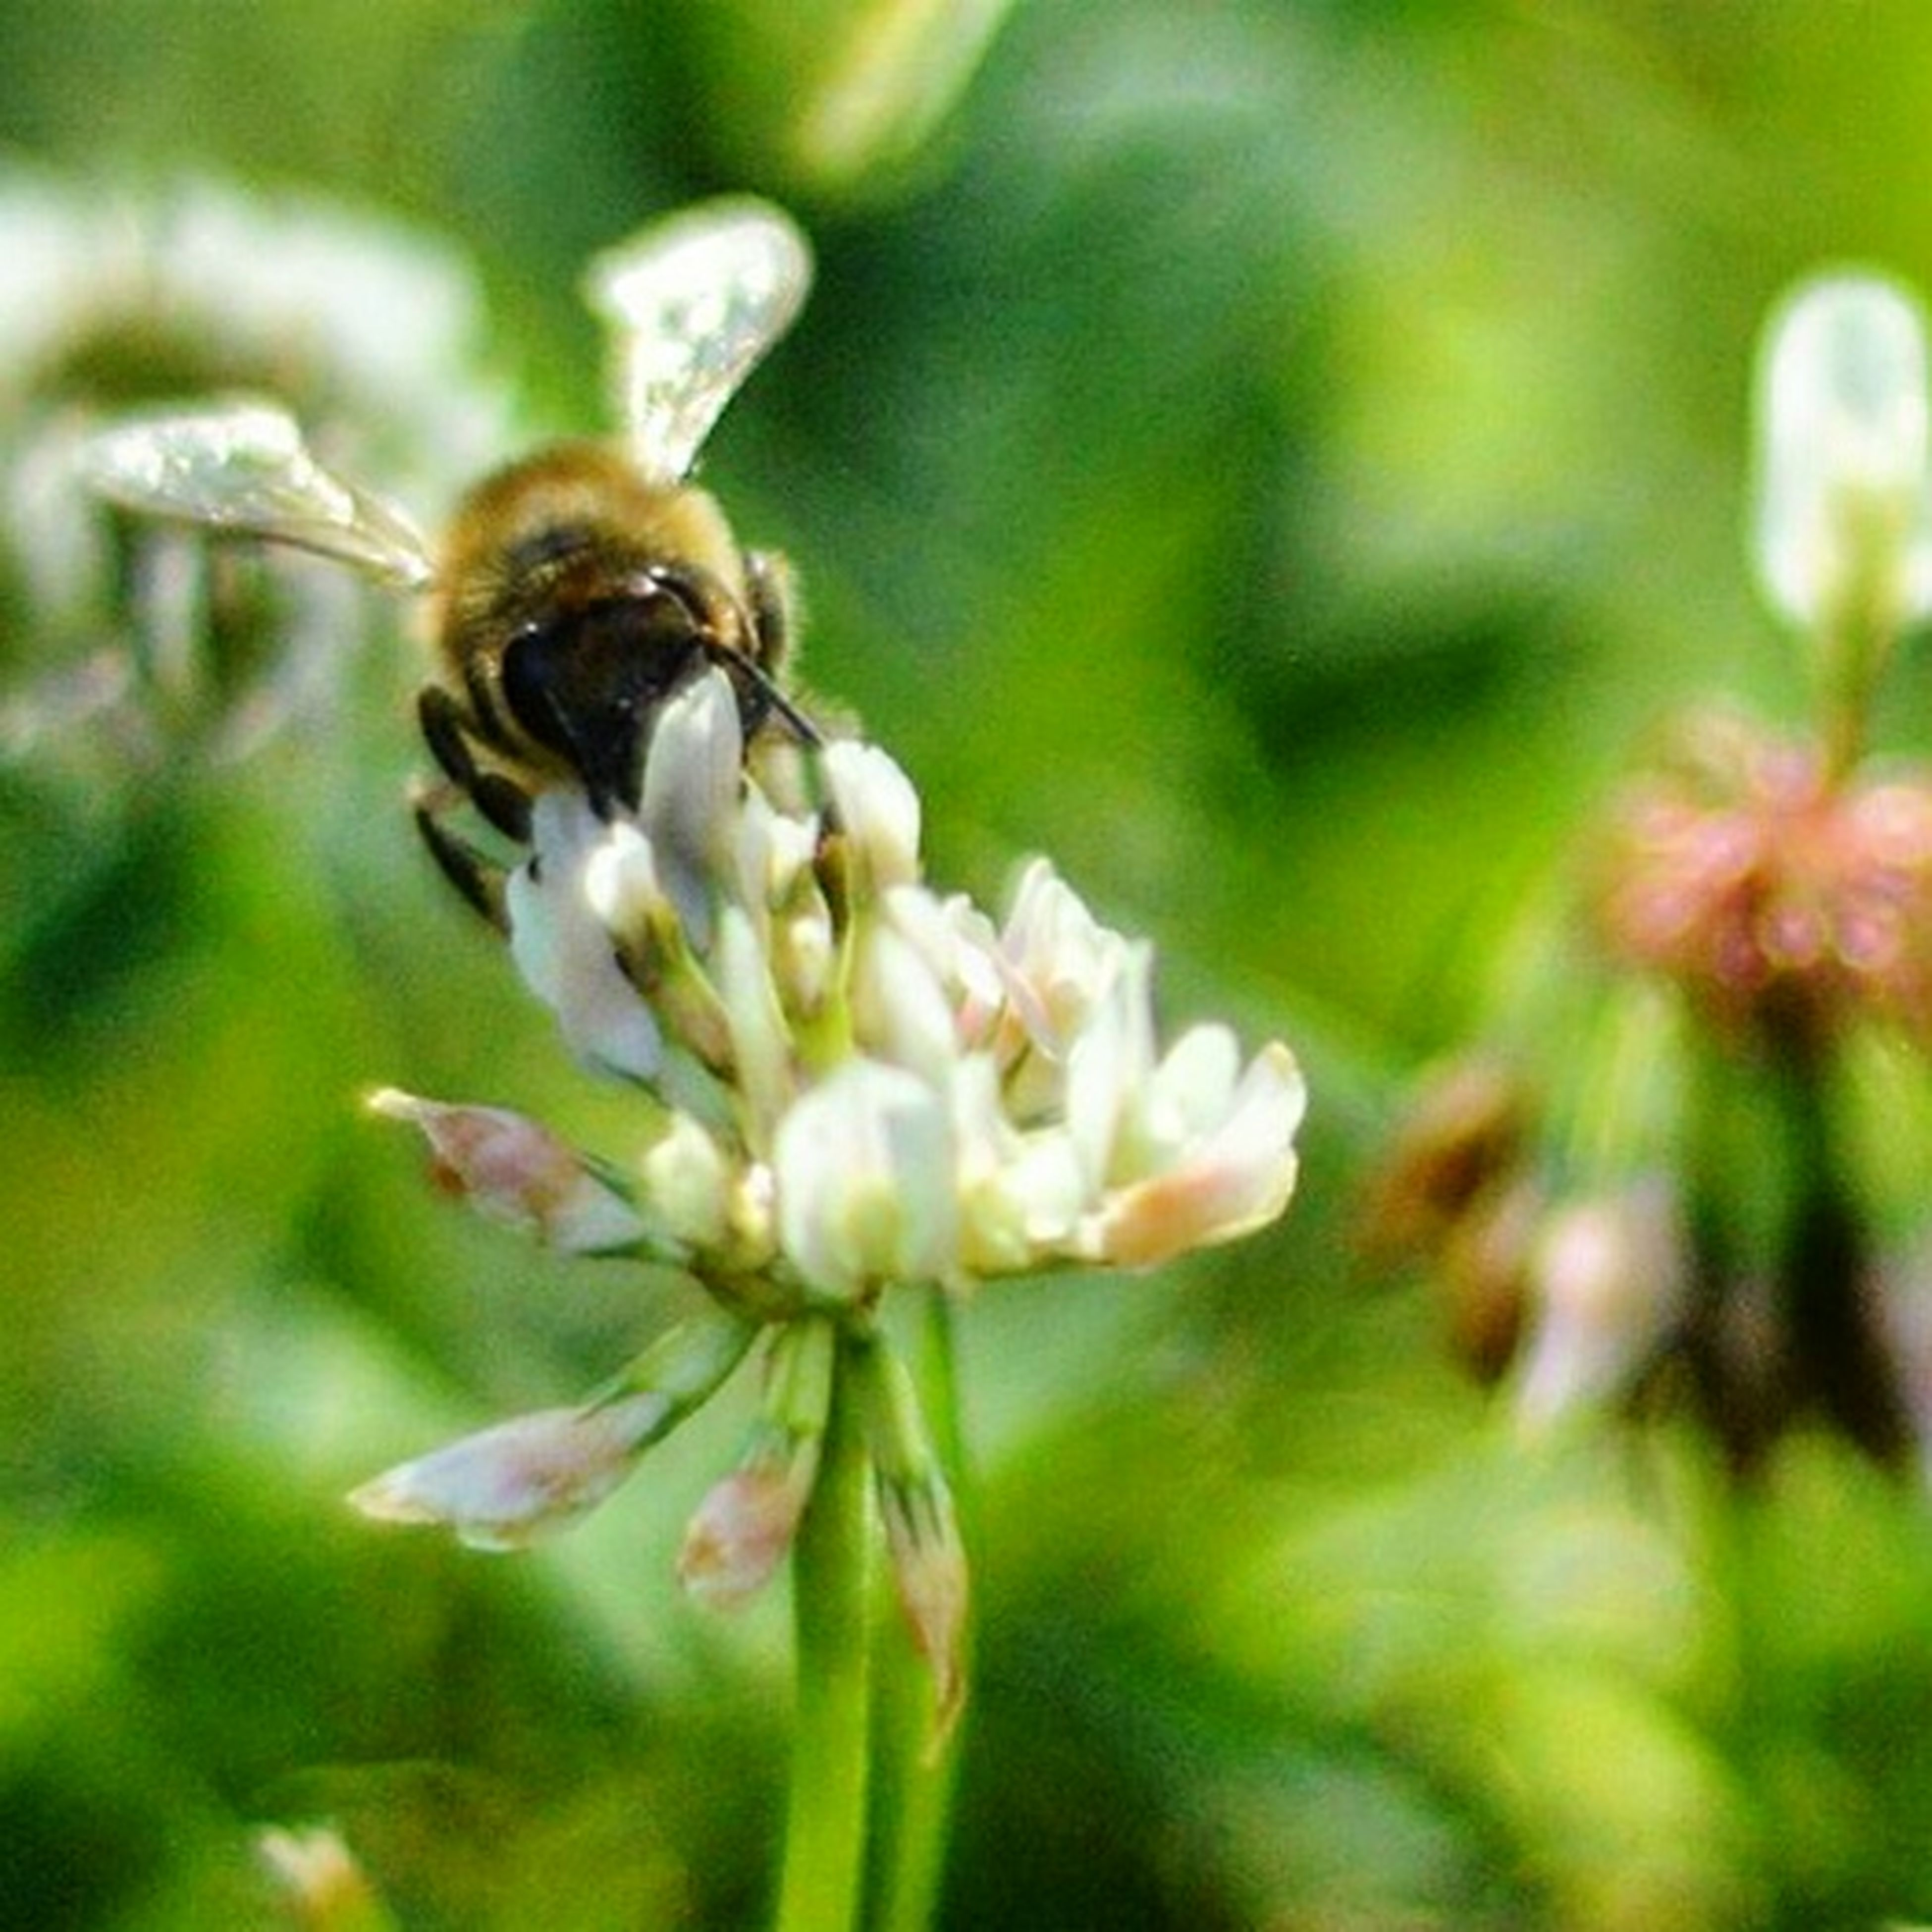 flower, insect, nature, fragility, one animal, animal themes, growth, animals in the wild, plant, bee, petal, close-up, beauty in nature, freshness, day, no people, outdoors, focus on foreground, pollination, flower head